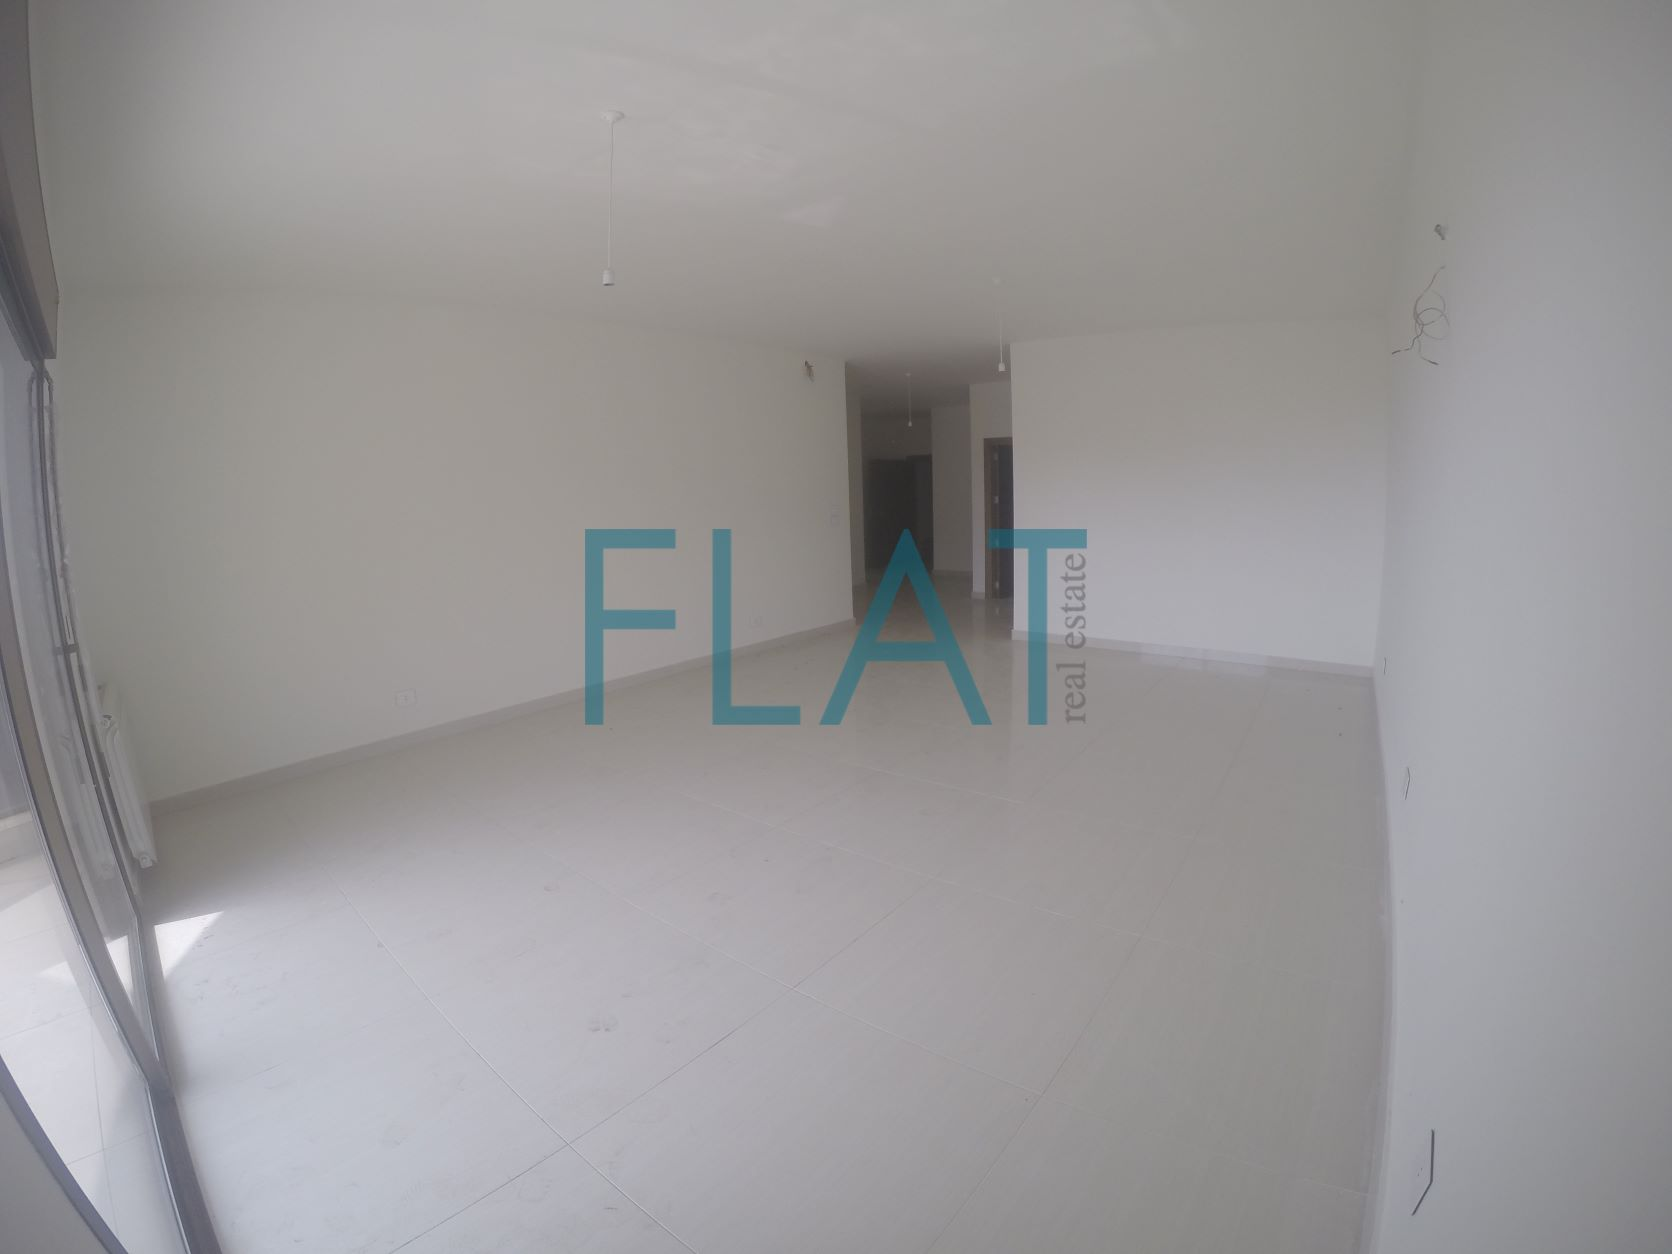 210 000 $ CASH – FOR SALE IN ZOUK MOSBEH – FC2013